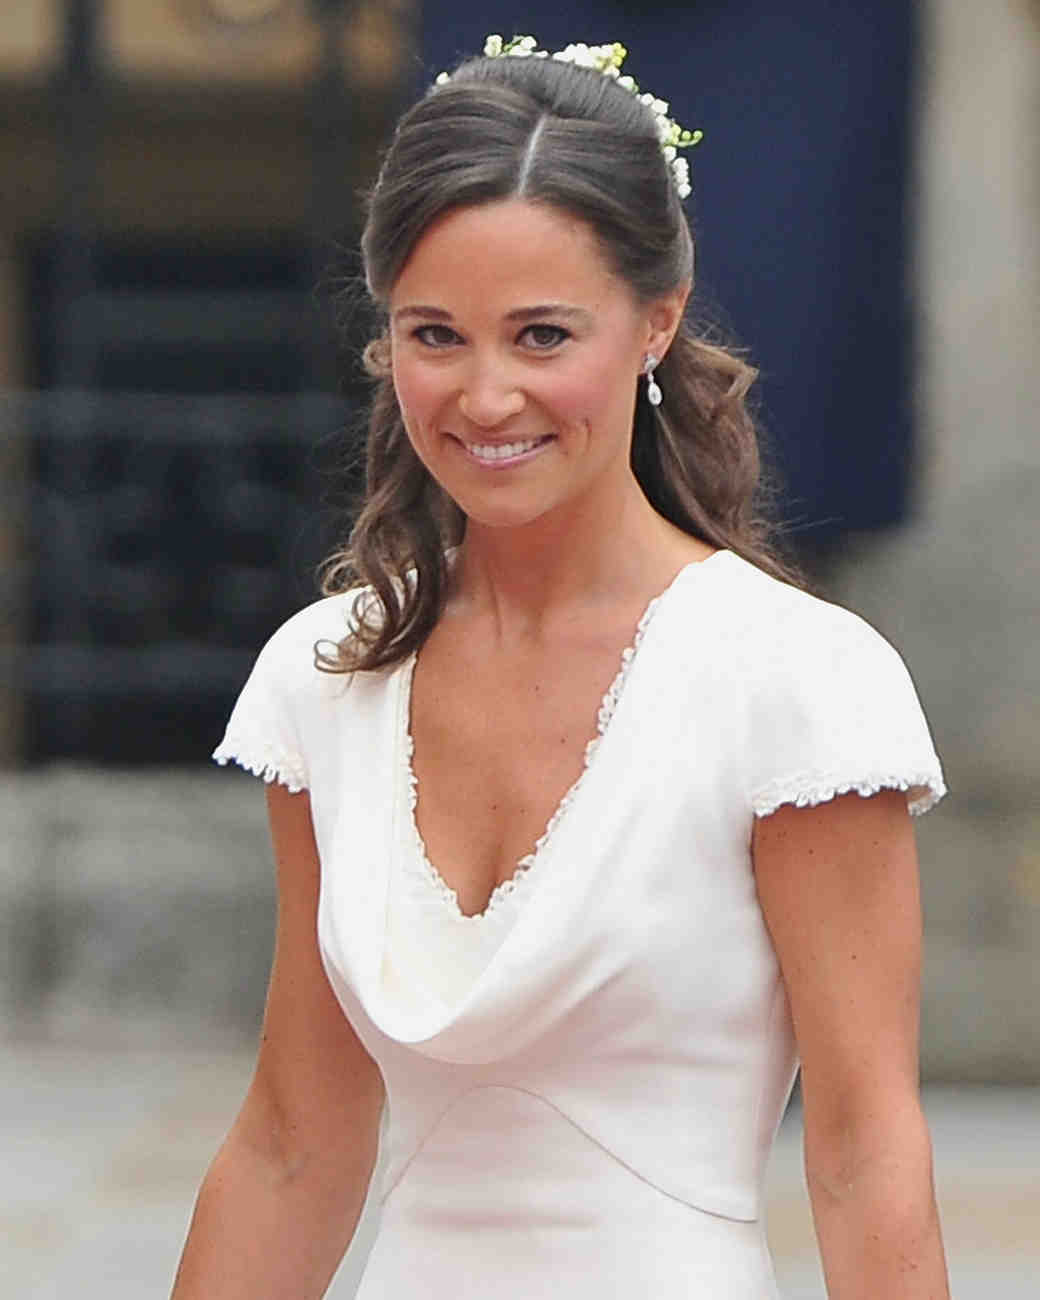 Is This Pippa Middleton's Wedding Dress Designer?